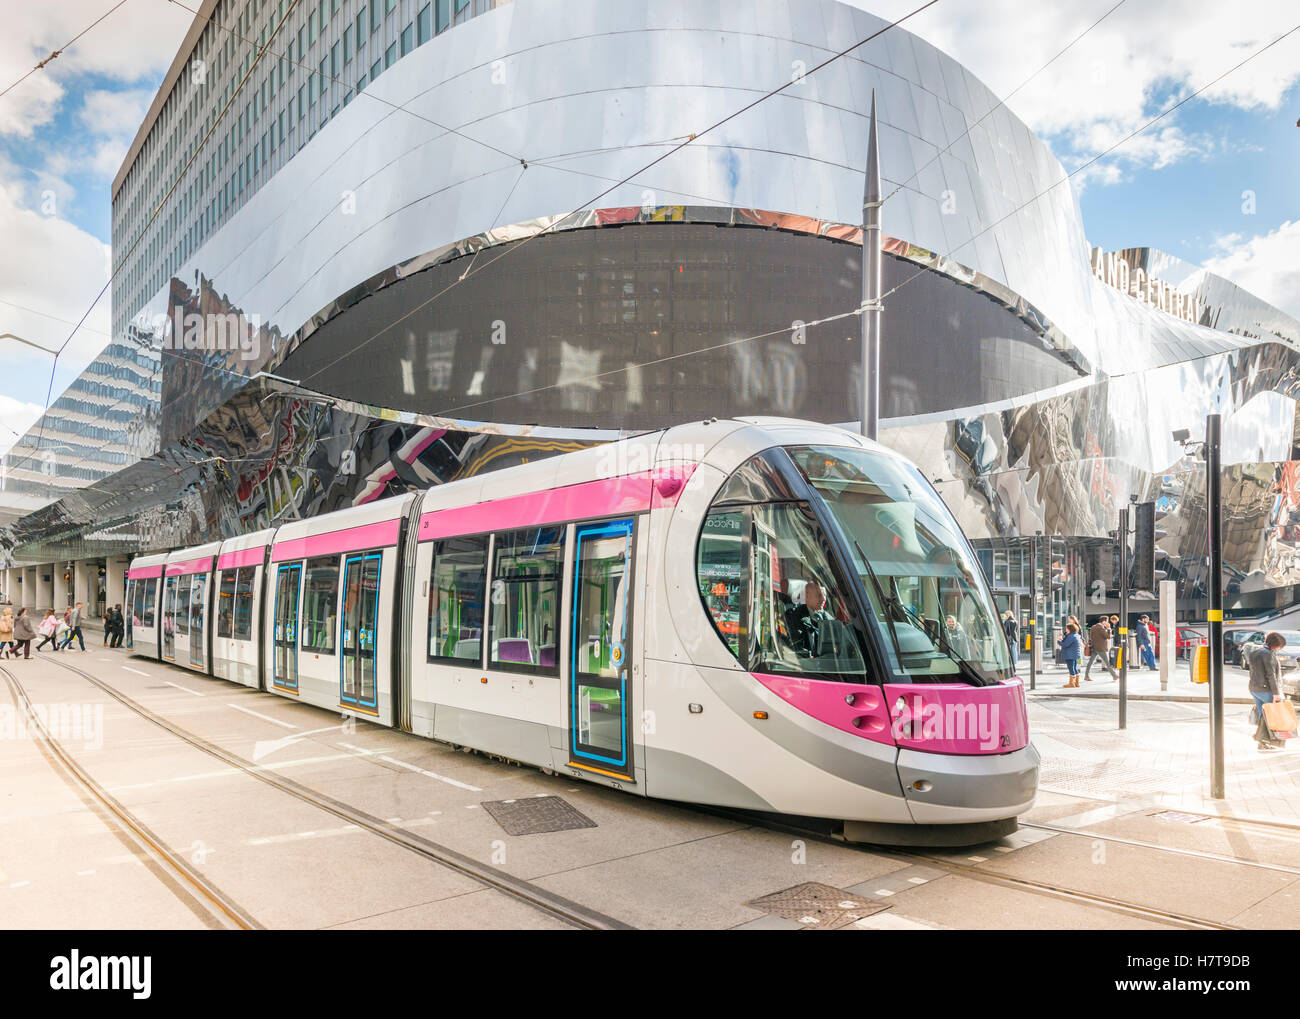 A tram in Birmingham City Centre alongside New Street train station, England. Editorial usage only. Stock Photo